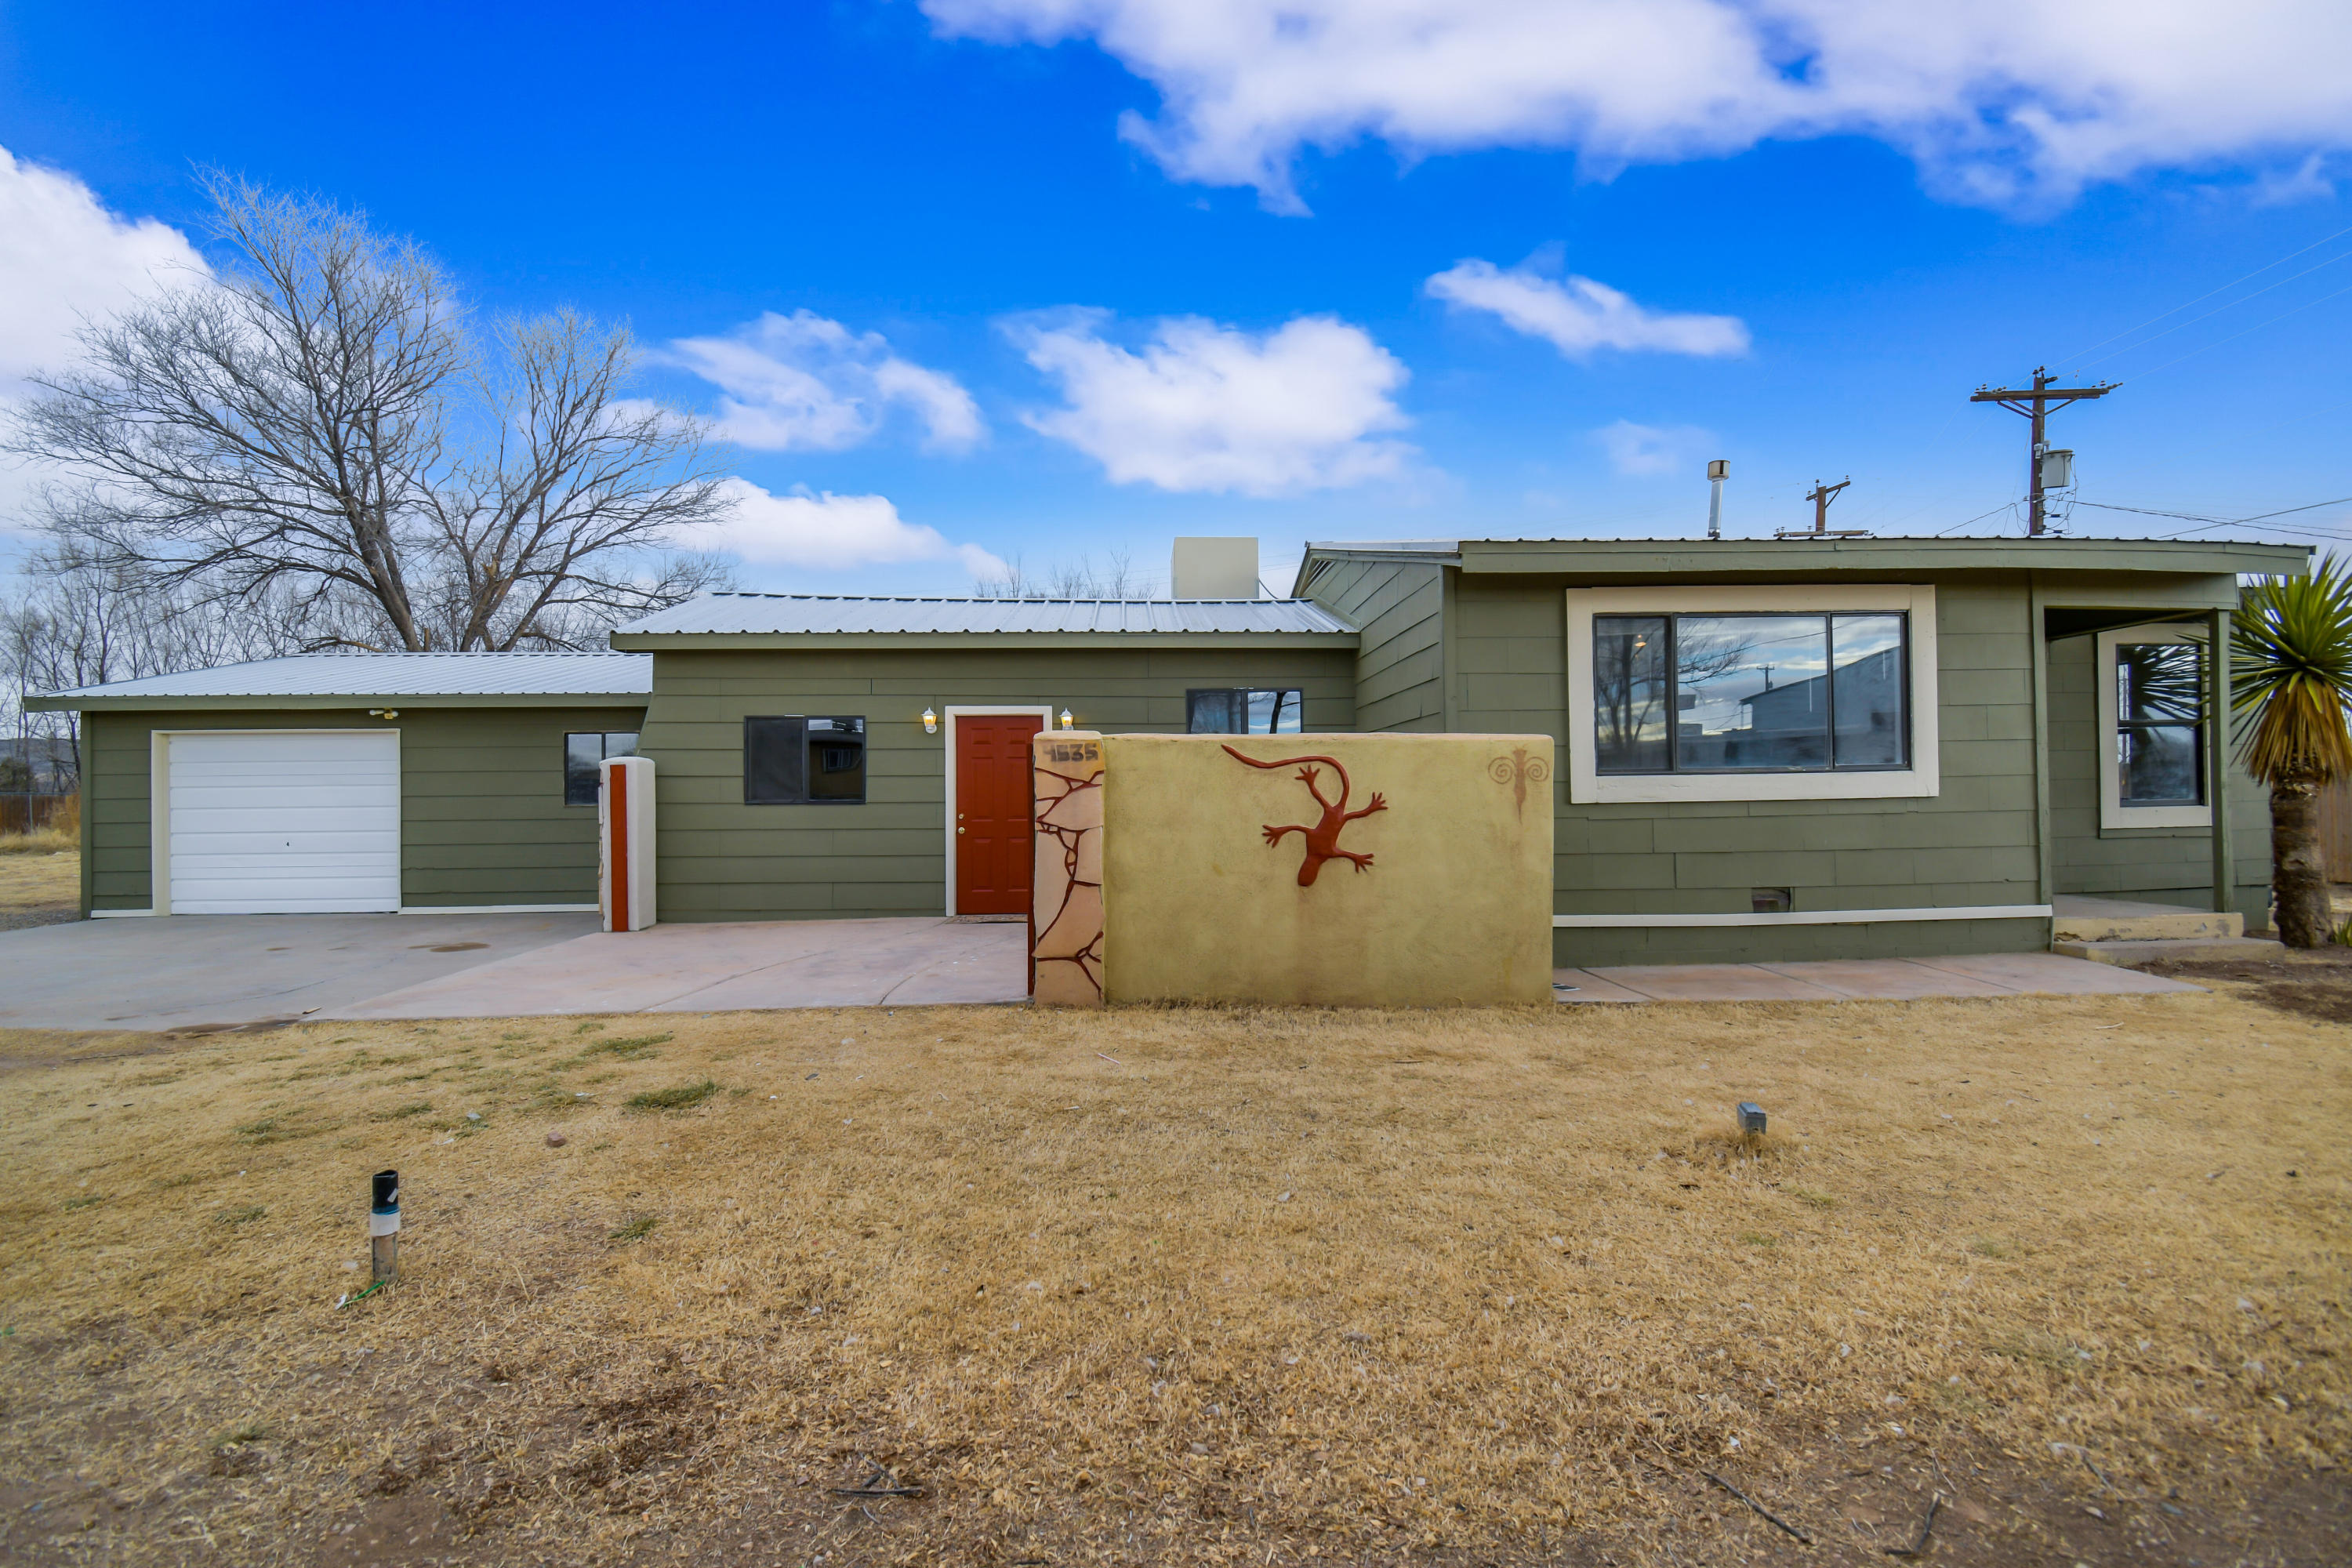 What a beautiful find on a 1/2 acre lot! Inviting entrance to this homey, open floor plan. Wood laminate flooring with carpeted bedrooms and a compact, easy to navigate kitchen! Large fenced-in backyard. Lots of potential inside and outside for the decorator in you! Schedule a viewing today, this one won't stay on the market for long!